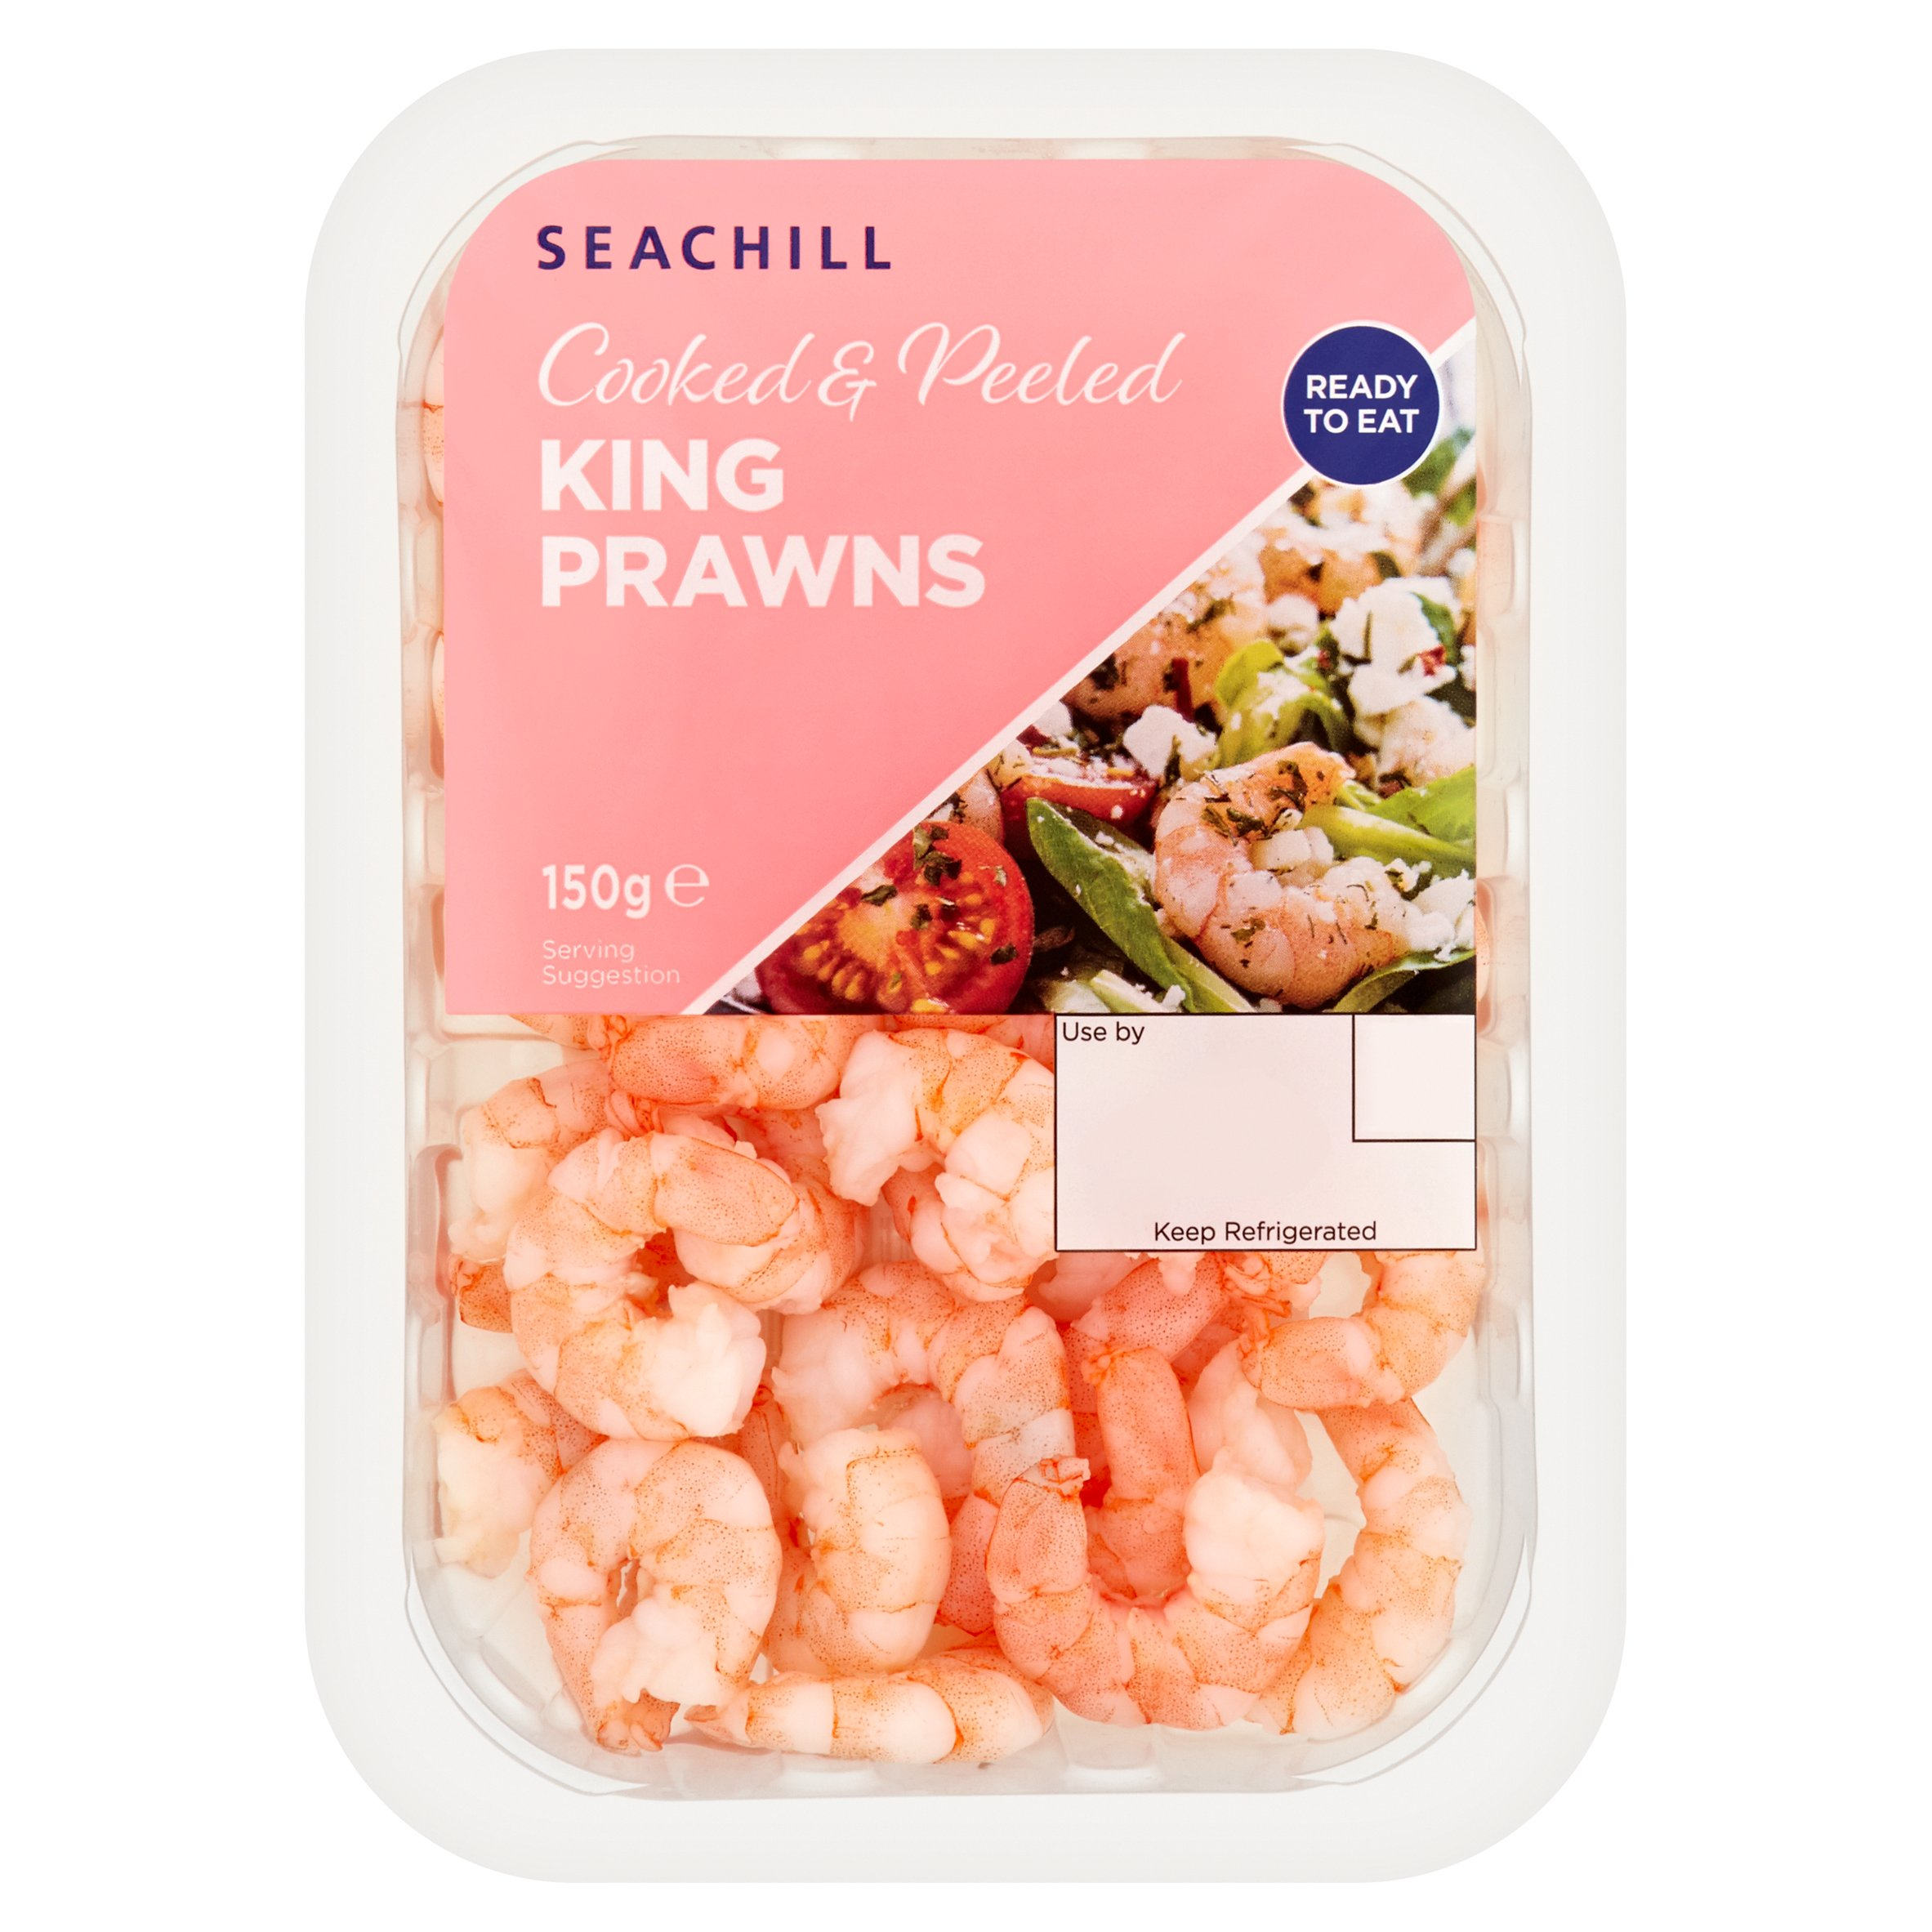 Seachill Cooked& Peeled King Prawns 150G